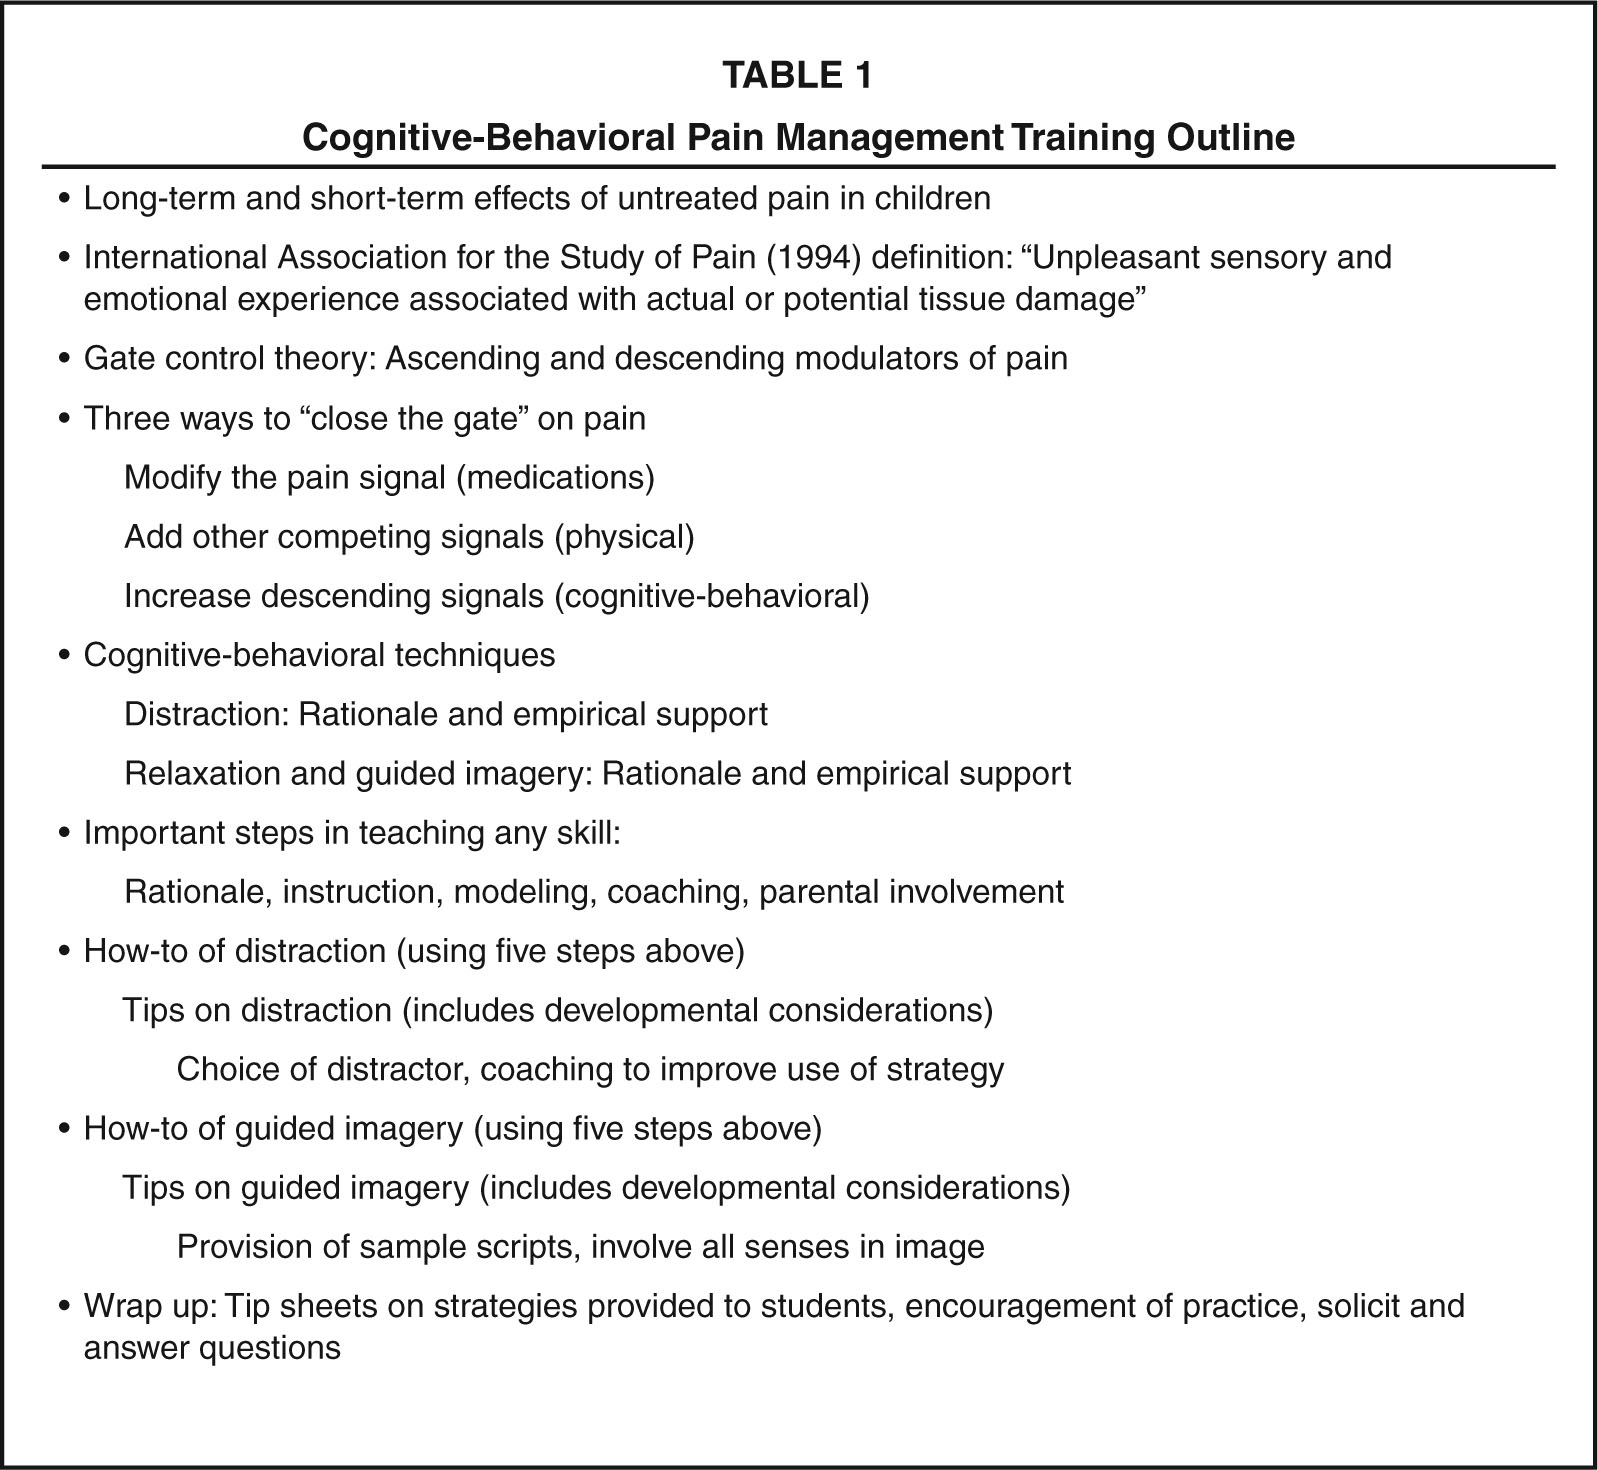 Training Nursing Students In Evidence Based Techniques For Cognitive Behavioral Pediatric Pain